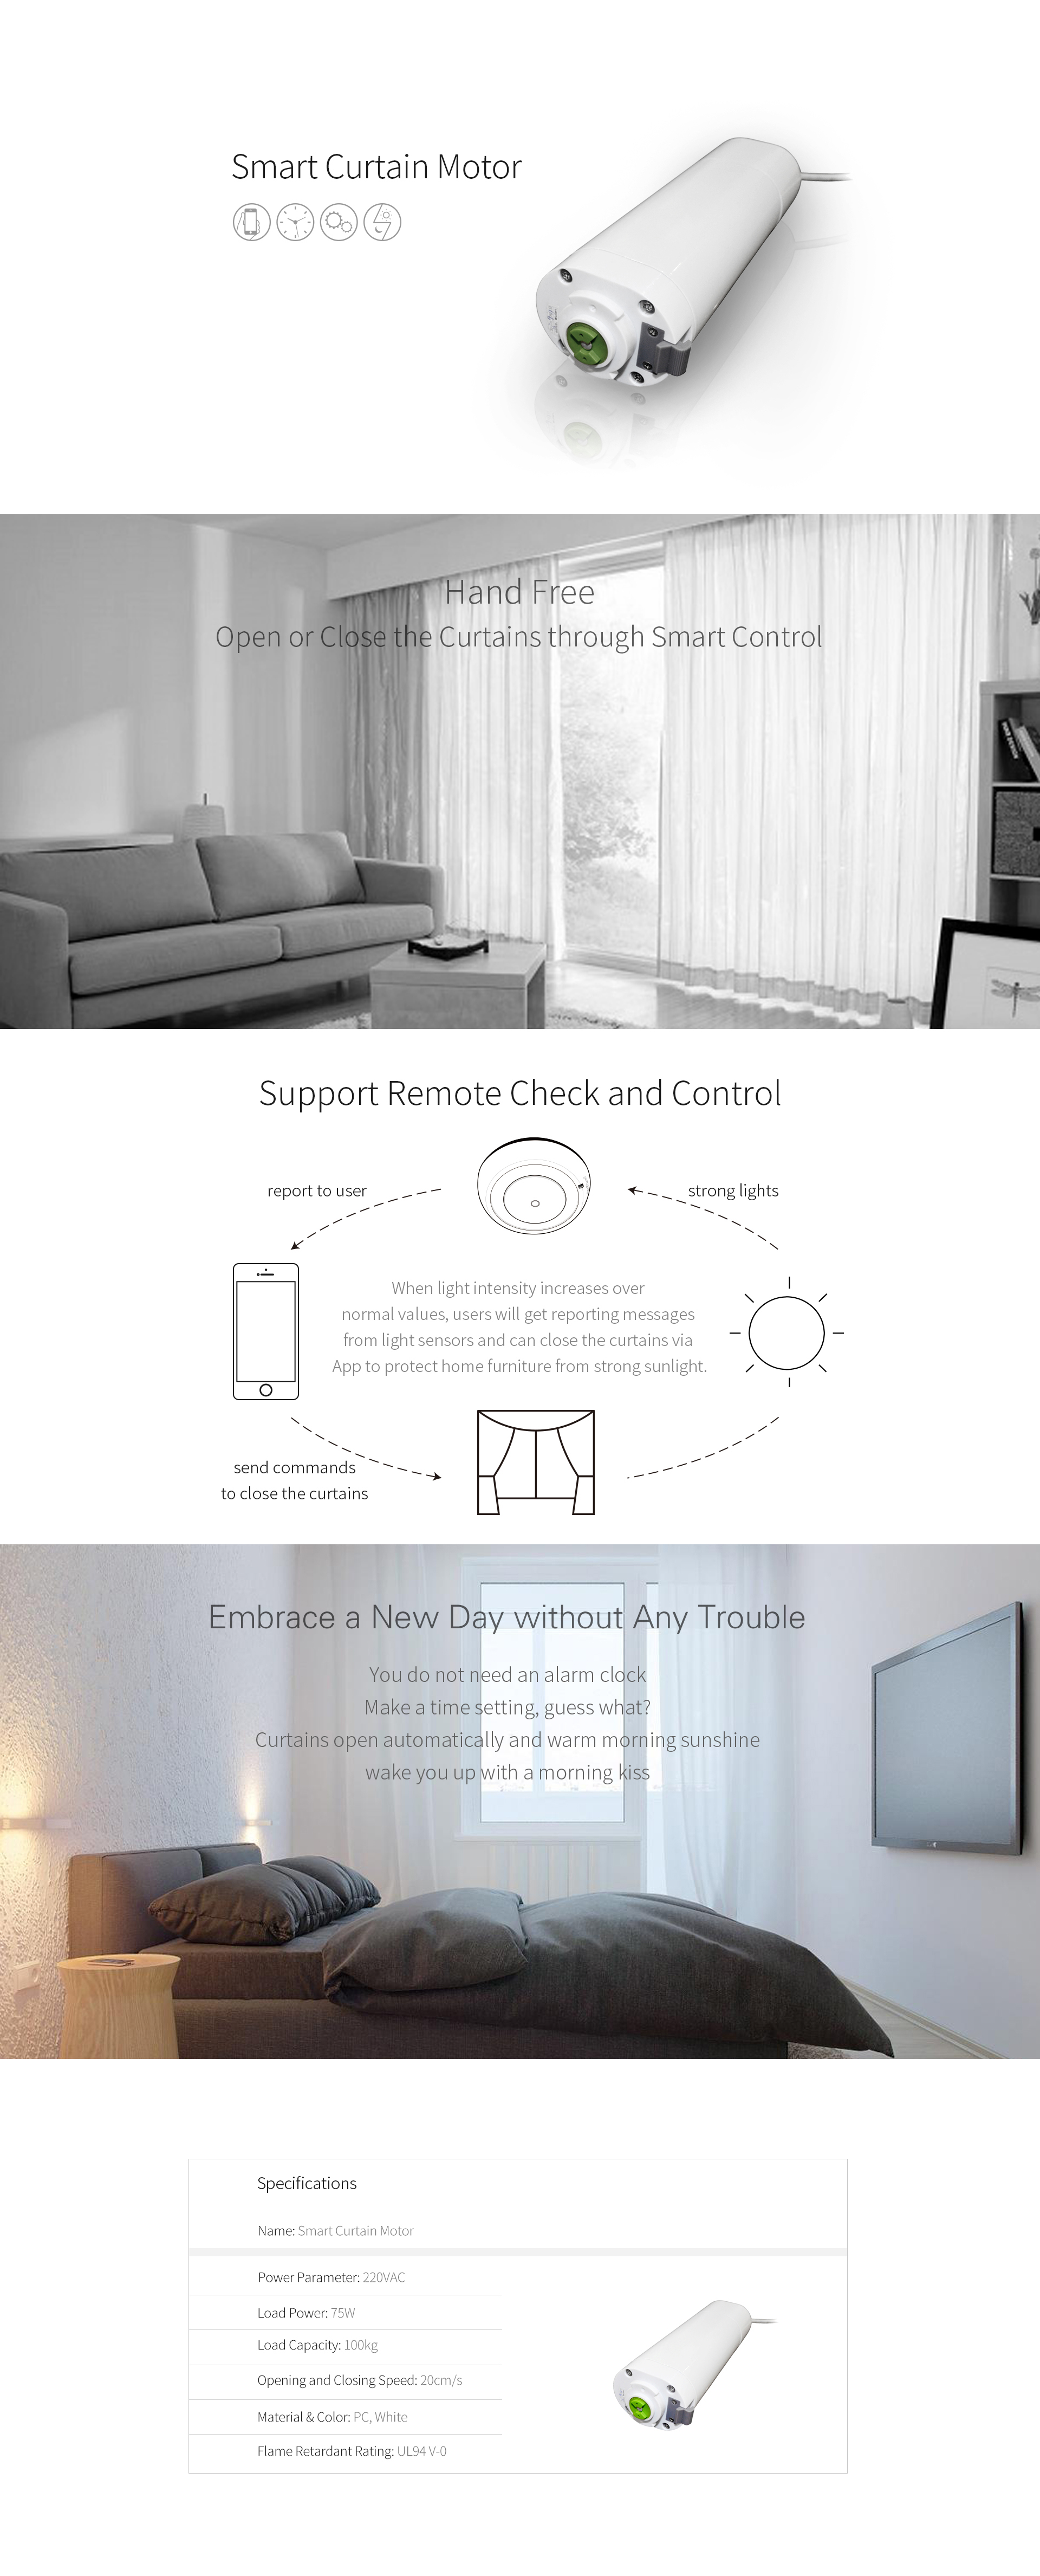 Smart Curtain Motor Lt Smart Smart Glass Nb Iot And